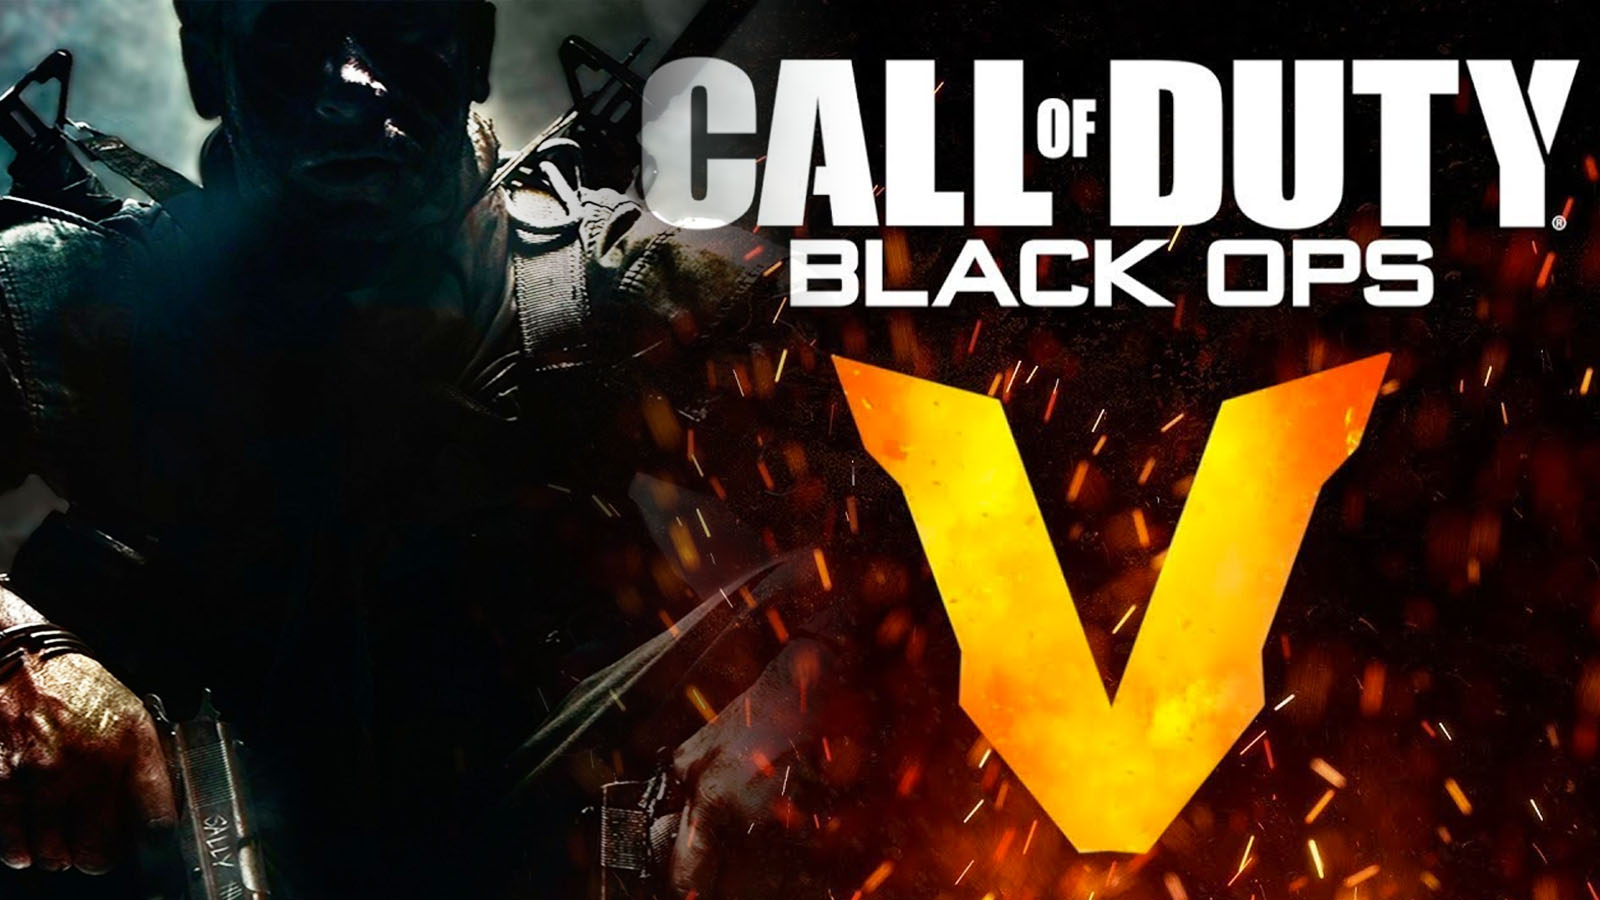 Call of Duty: Black Ops 2020 leaked: Multiplayer, zombies & campaign